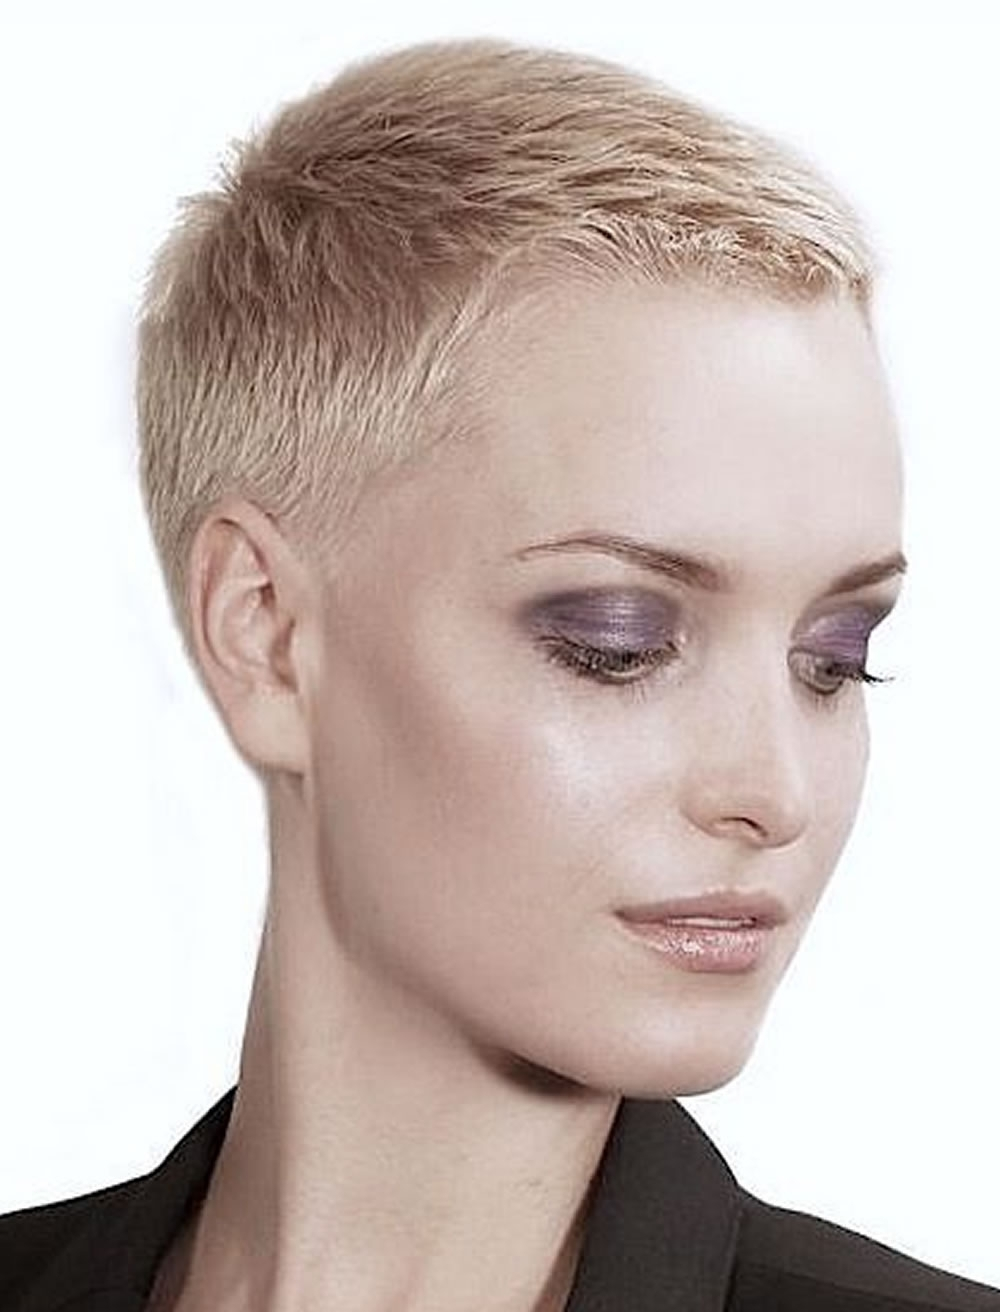 Very Short Pixie Haircut Tutorial & Images For Glorious Women 2017 Pertaining To Newest Short Blonde Pixie Hairstyles (View 3 of 15)